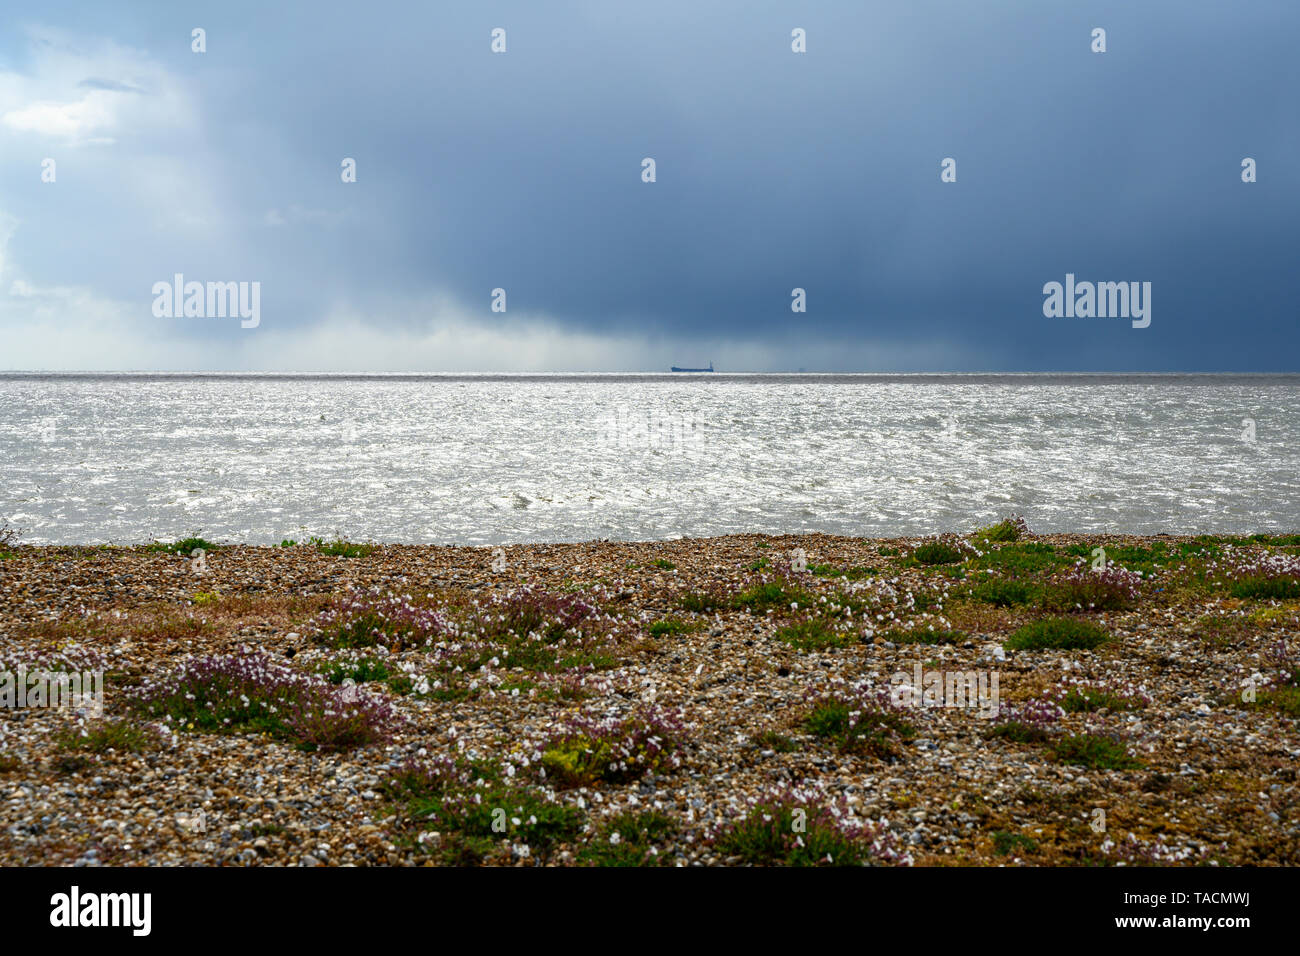 North Sea coast, Bawdsey, Suffolk, England. - Stock Image